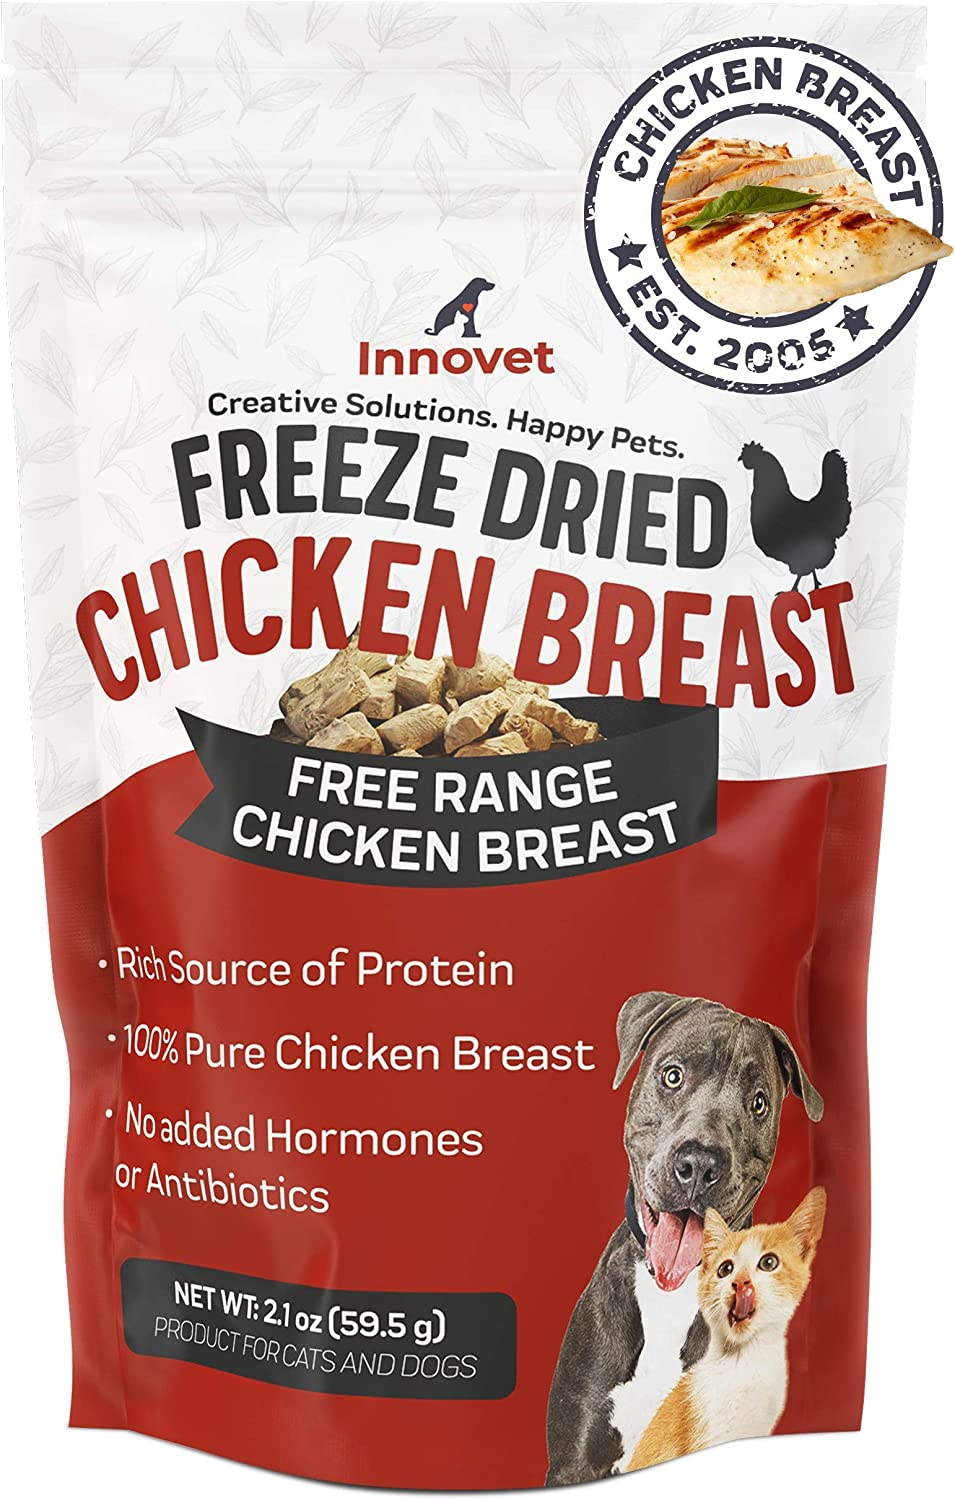 Innovet Pet Freeze Dried Treats - Chicken Breast - 3 Calories per Treat, Protein for Dogs, Freeze Dried Chicken, Training Treats for Dogs - Made in USA